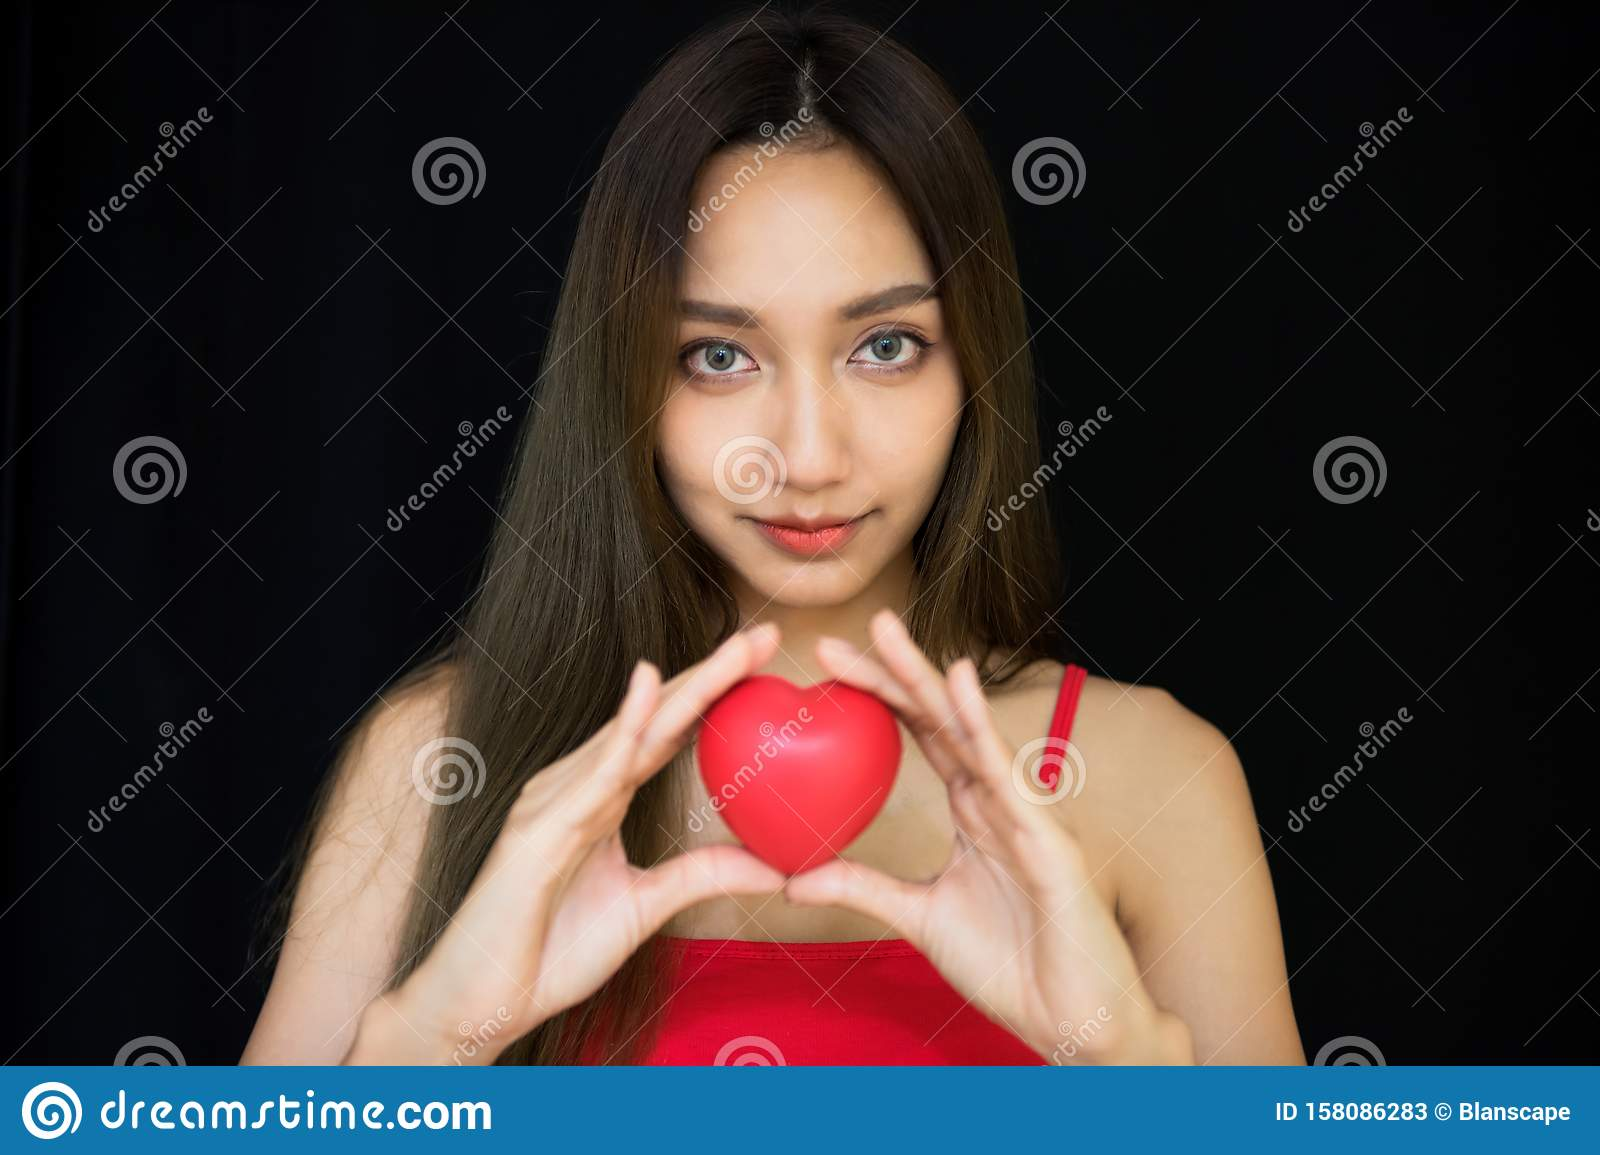 girl hold red heart toy